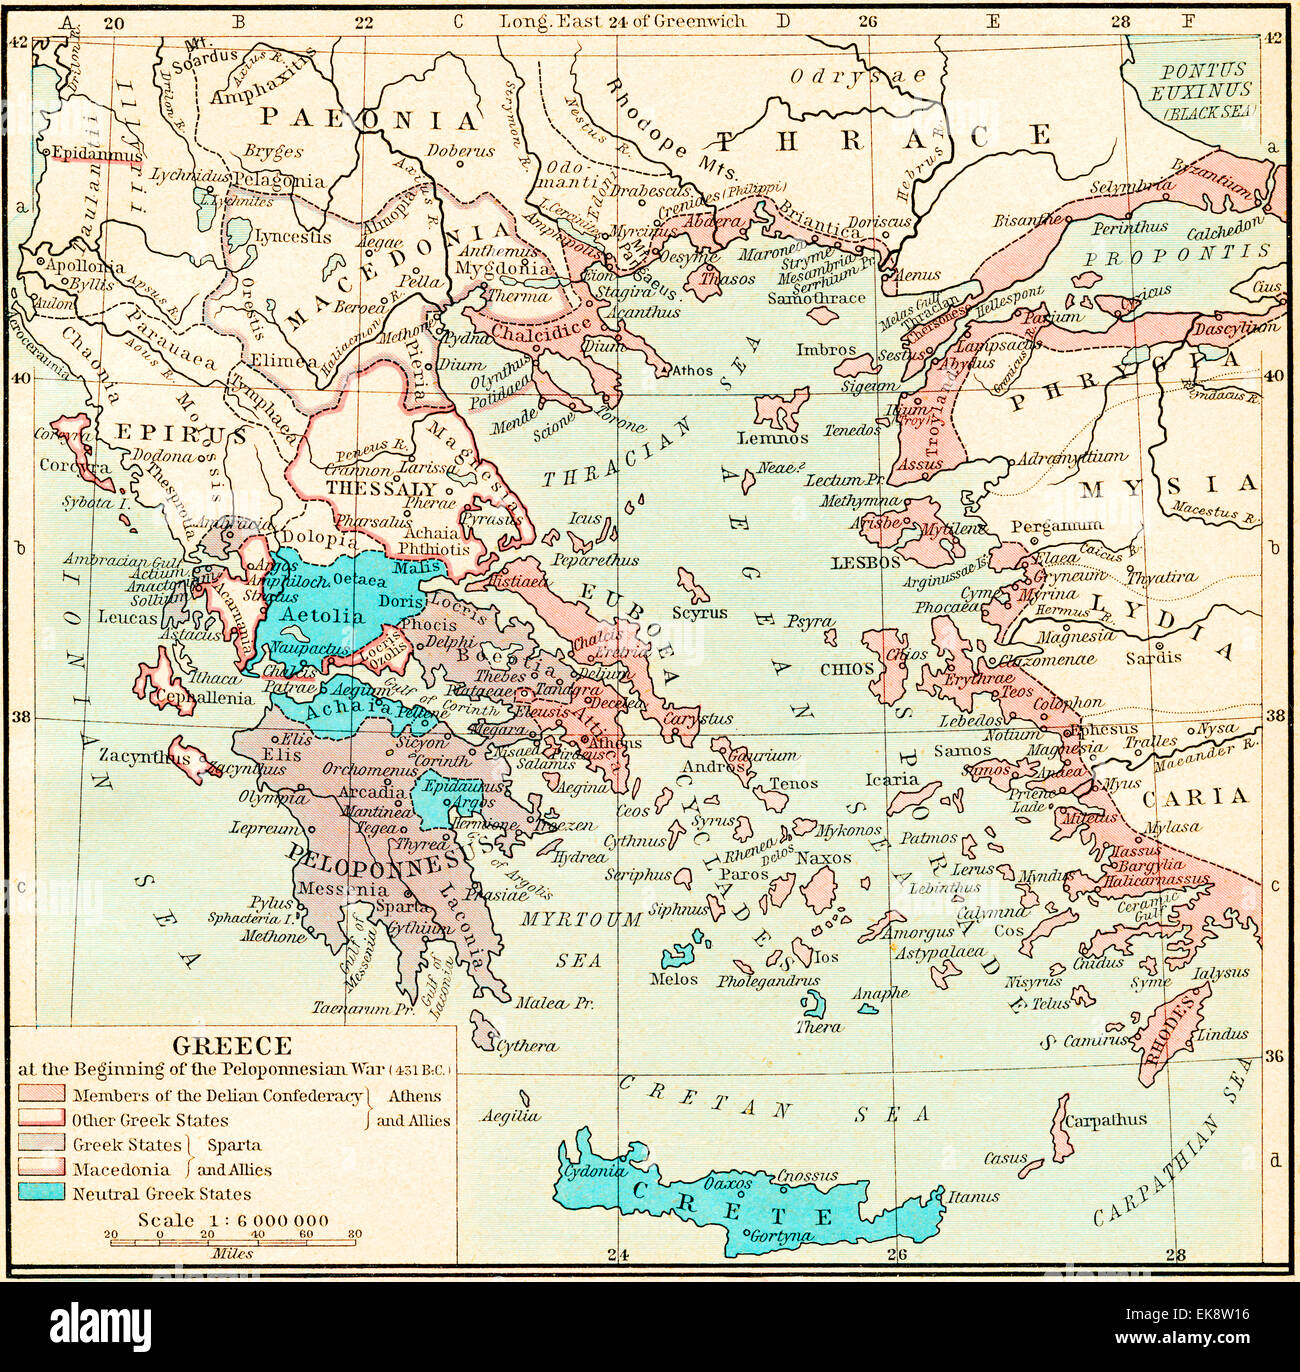 Map of Greece at the beginning of the Peloponnesian War, 431 B.C ...